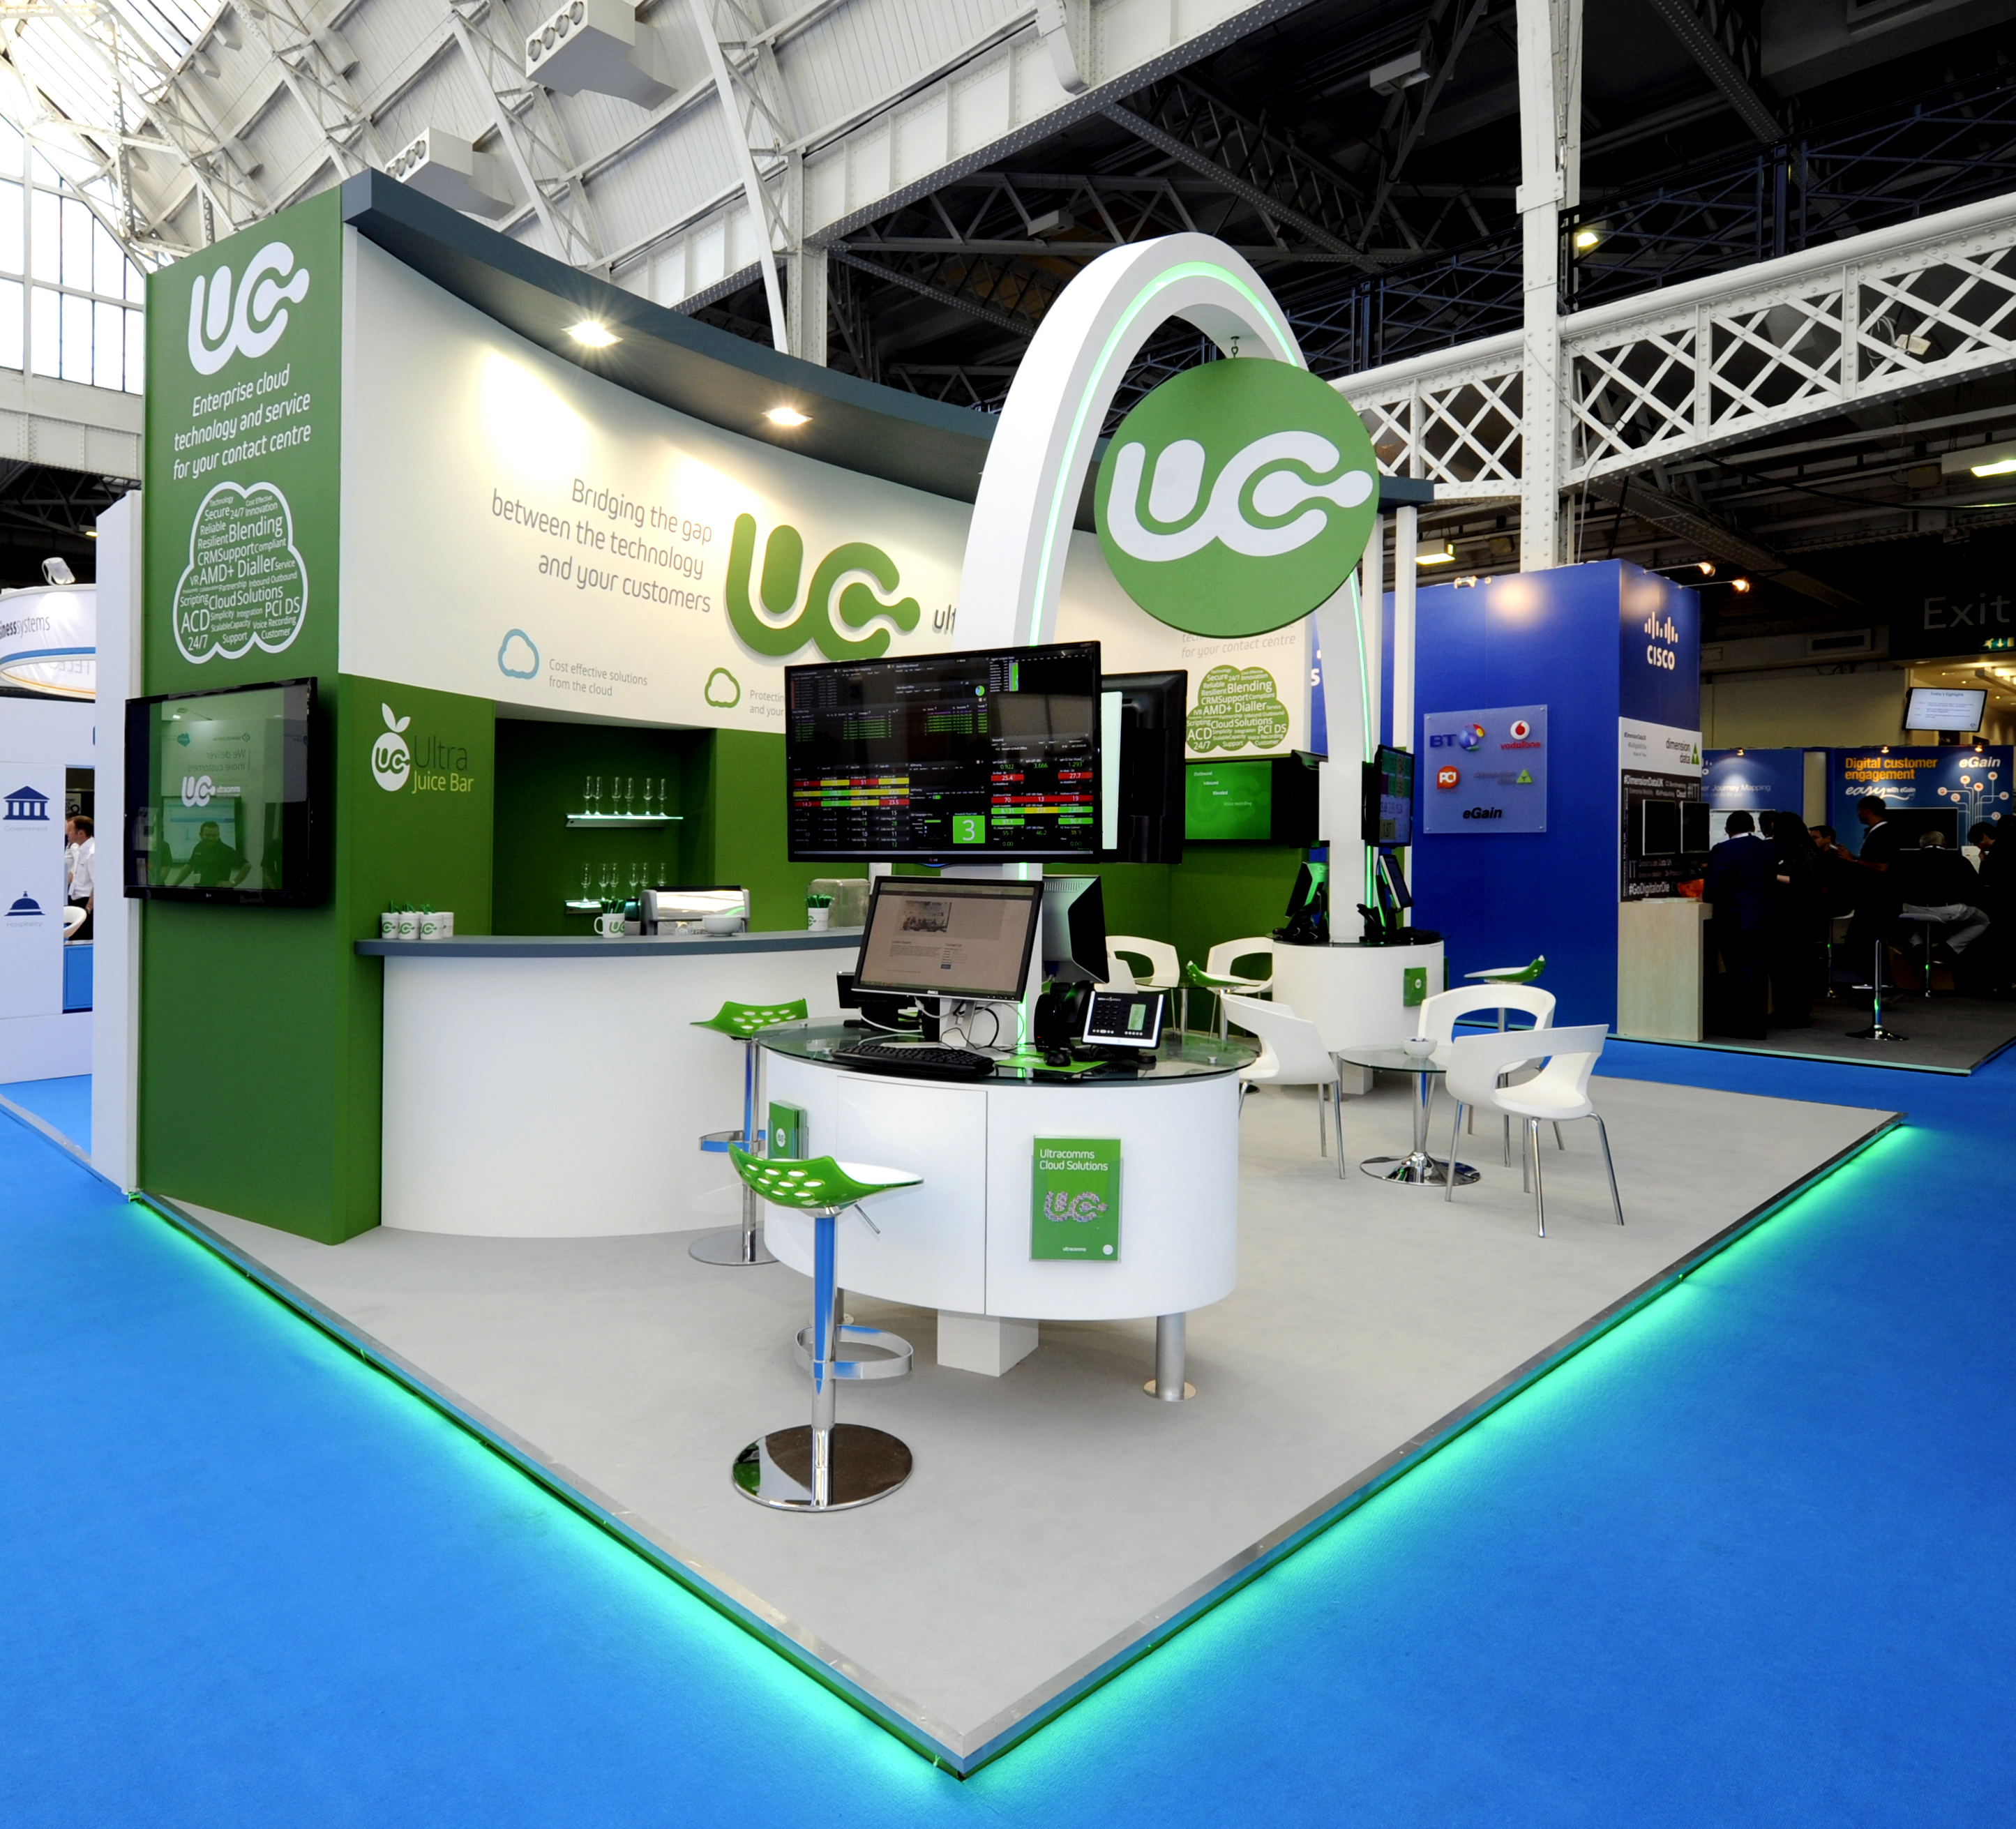 Exhibition Stand Photos : Exhibition stand design inspiration